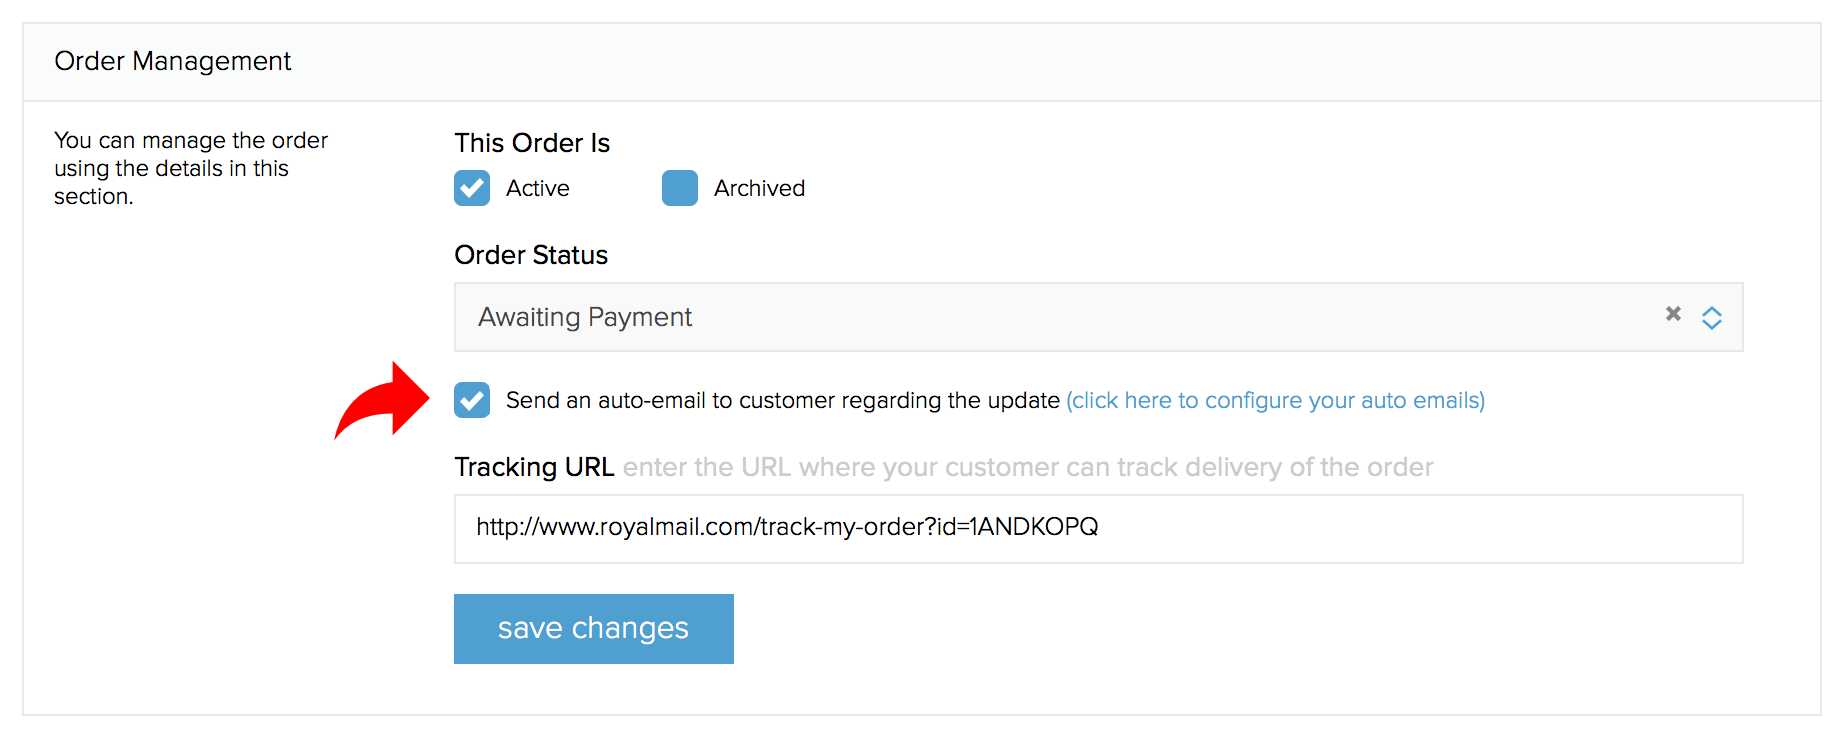 How does the tracking url variable work?